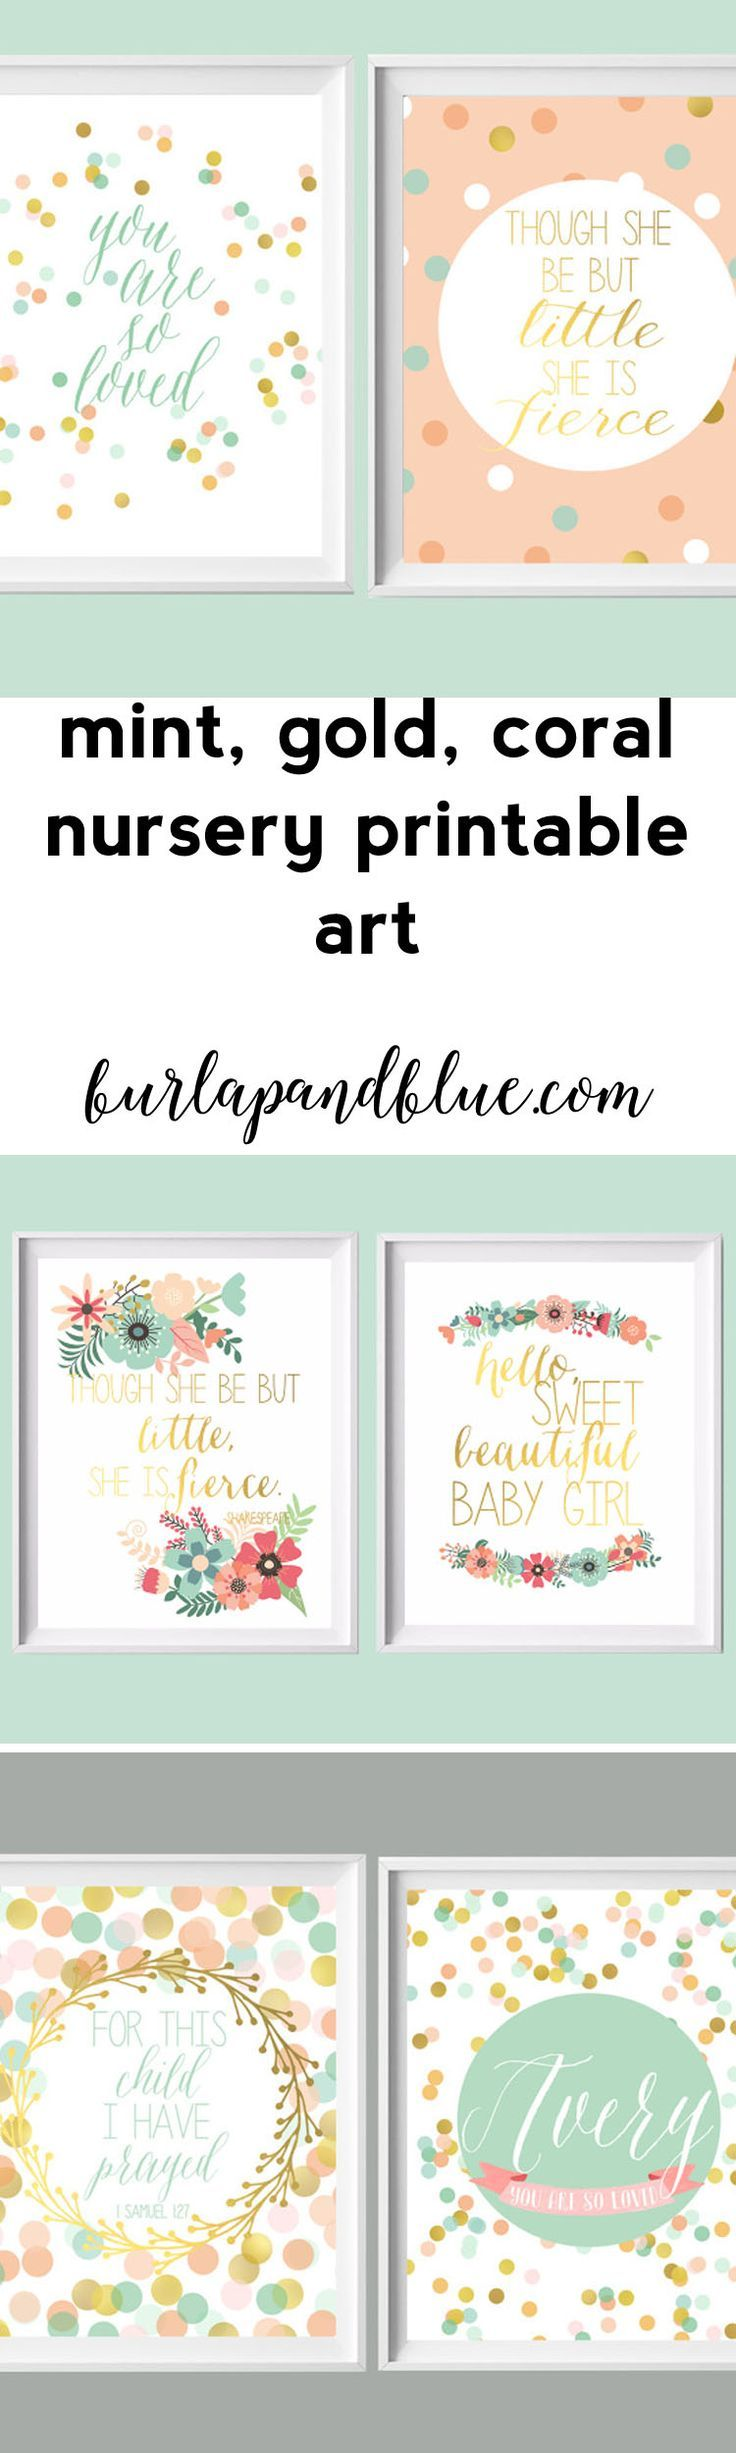 mint, coral, gold nursery wall art printables--girl nursery printables / baby shower decor trendy family must haves for the entire family ready to ship! Free shipping over $50. Top brands and stylish products